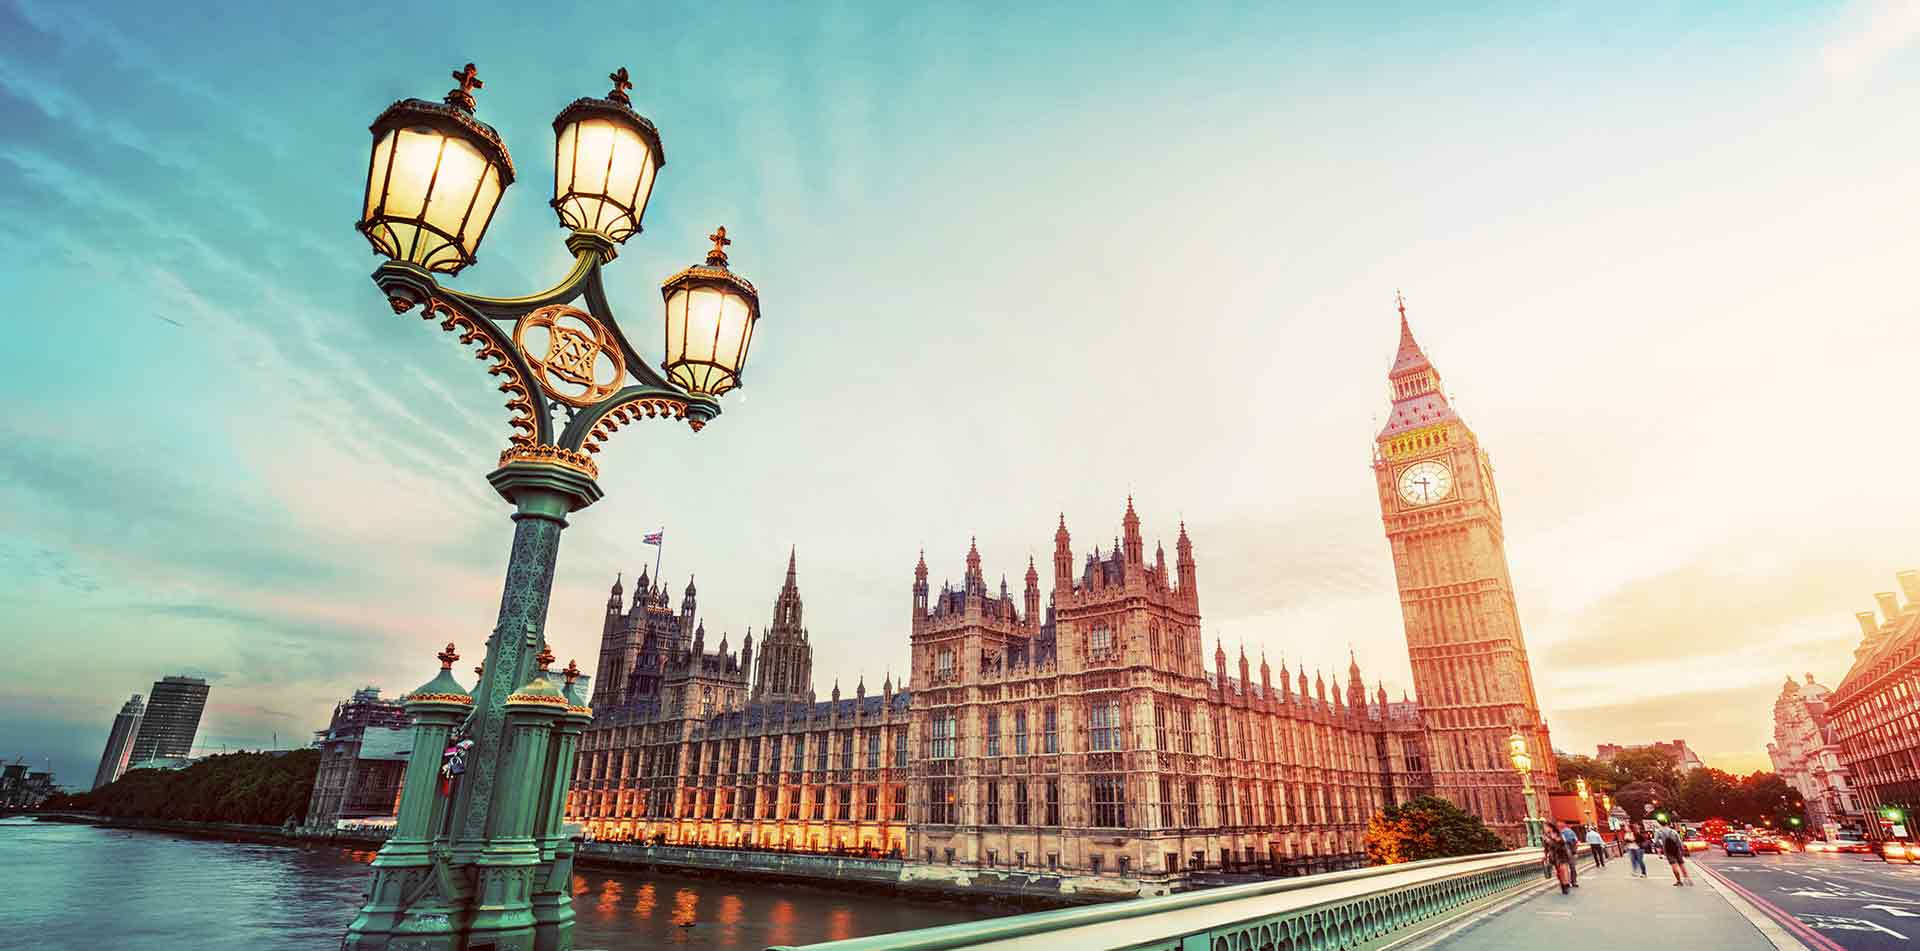 Europe United Kingdom England London historic Big Ben Palace of Westminster on River Thames - luxury vacation destinations